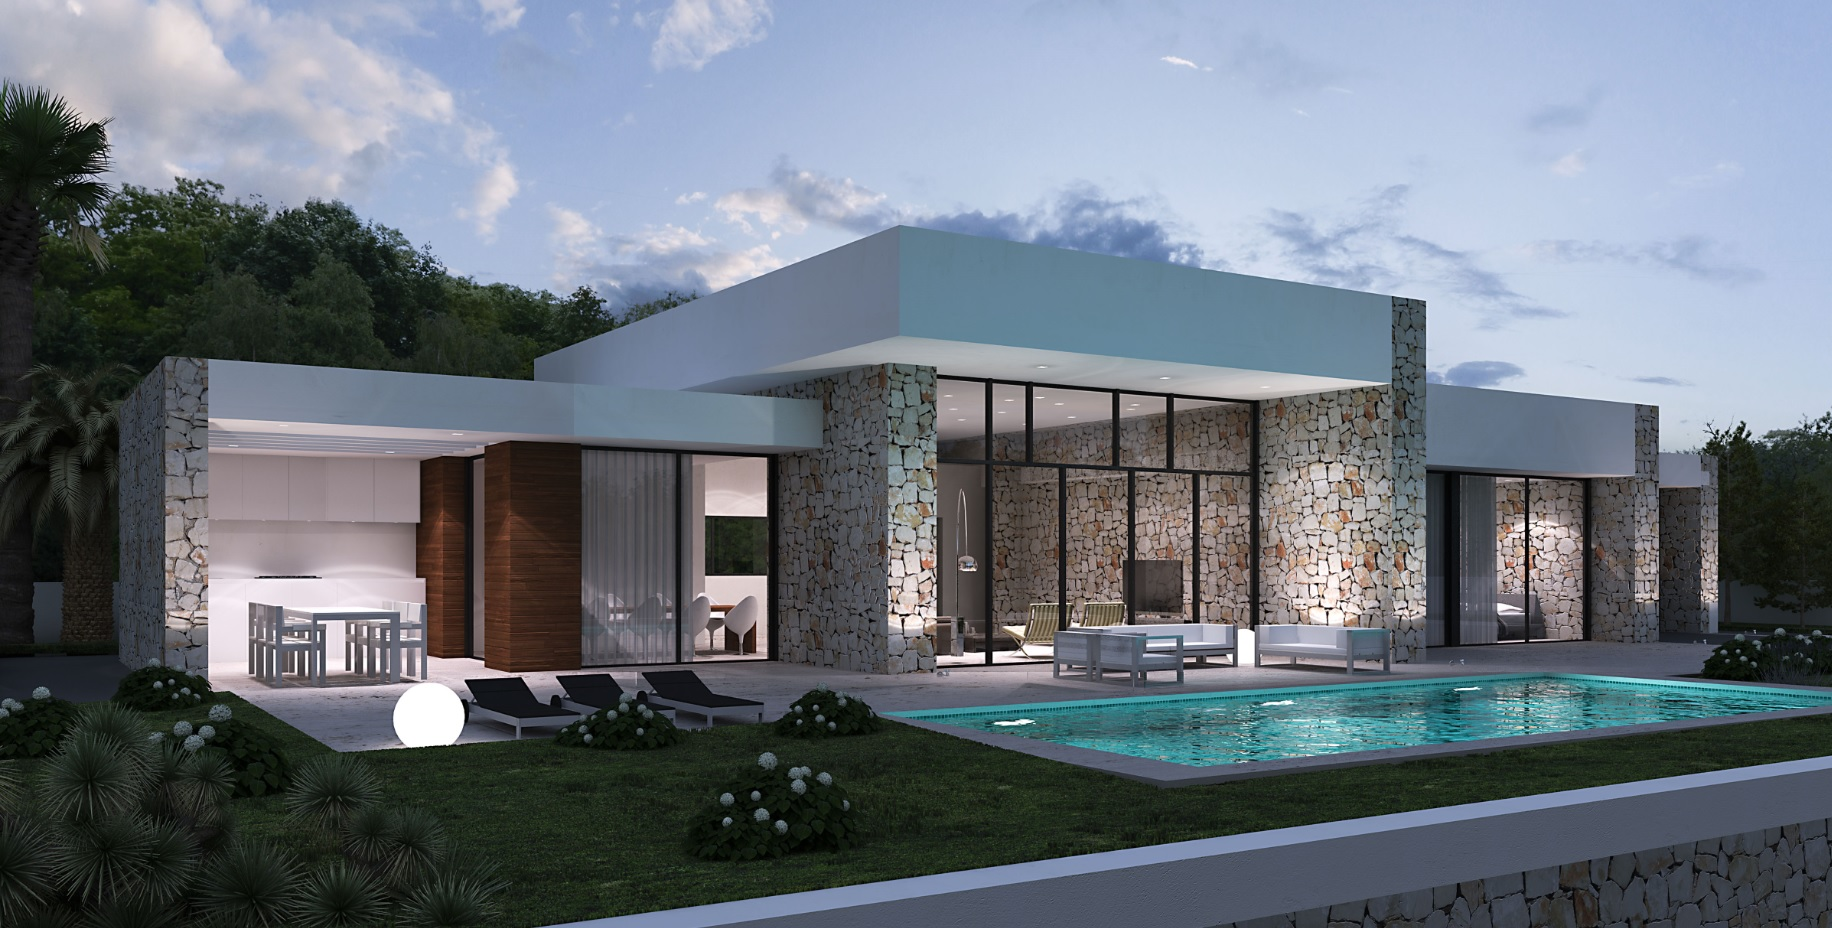 Pool Kaufen Coop Viva Espana By Lifestyle Homes Ag Moderne Spanische